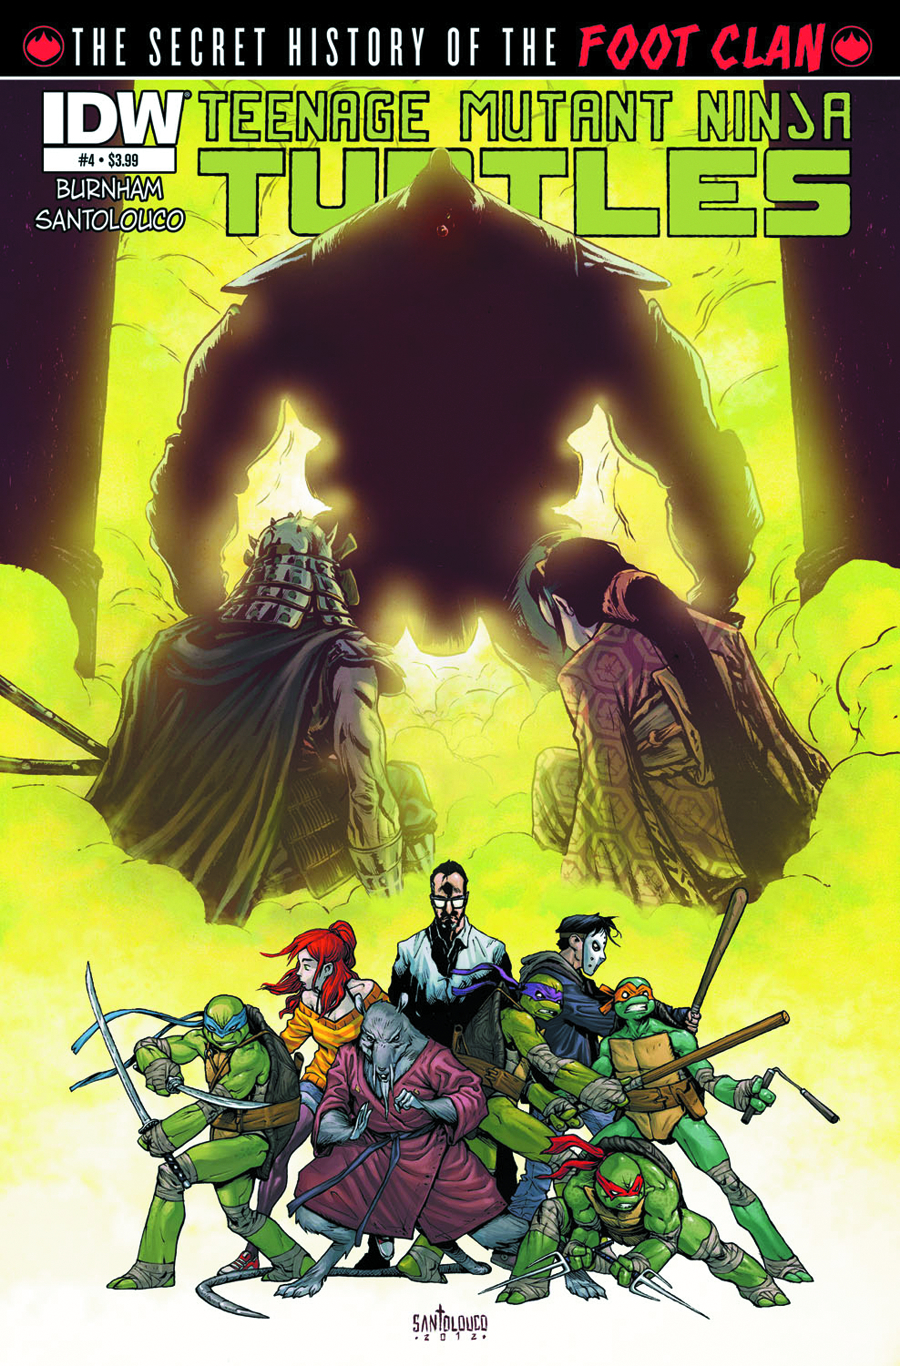 TMNT SECRET FOOT CLAN #4